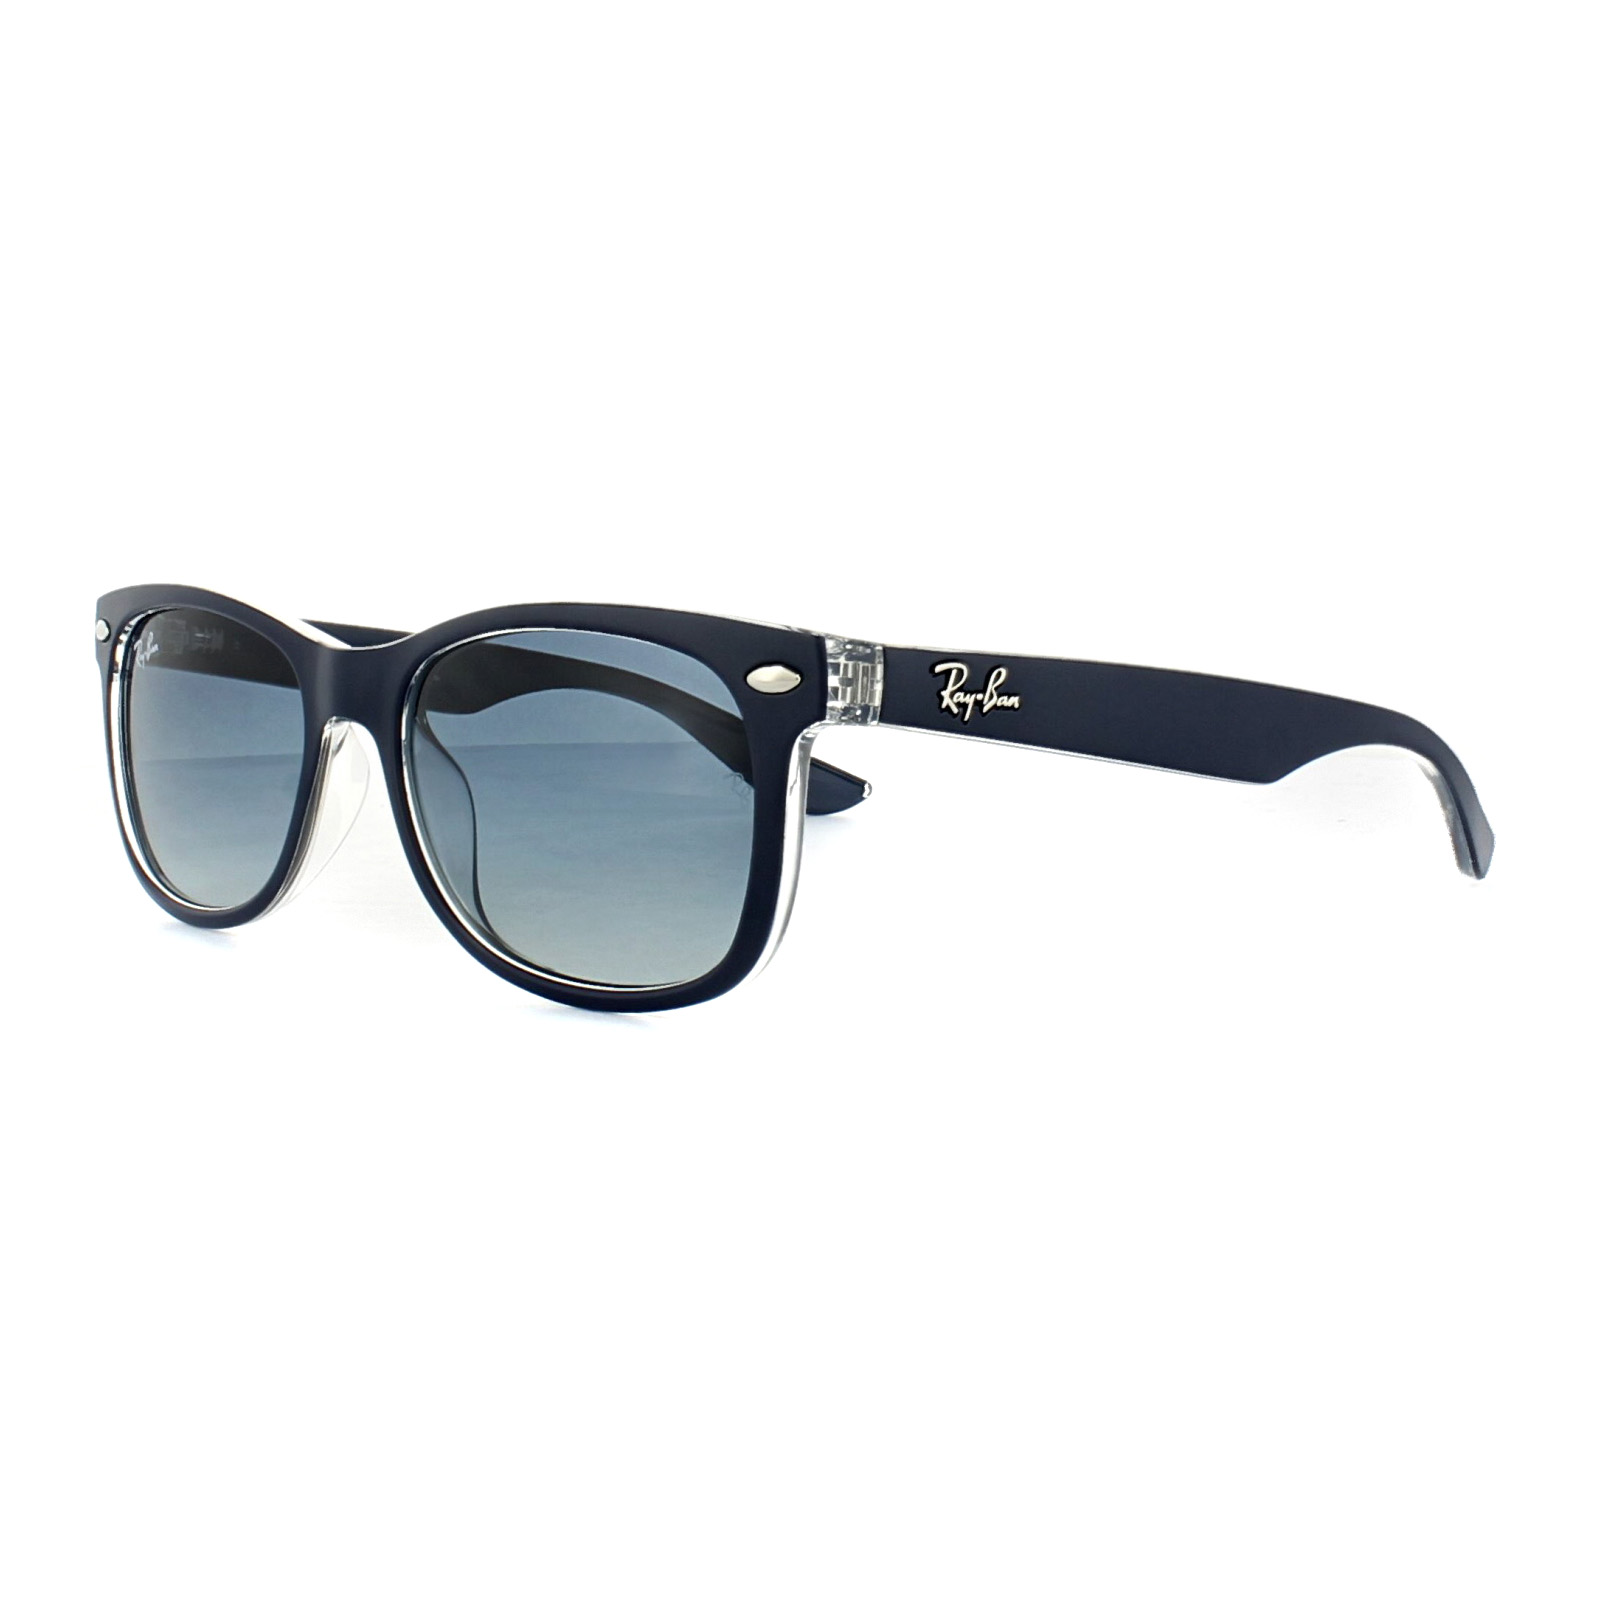 6b38233fc3 Ray-Ban Junior Sunglasses New Wayfarer 9052S 70234L Blue Crystal ...